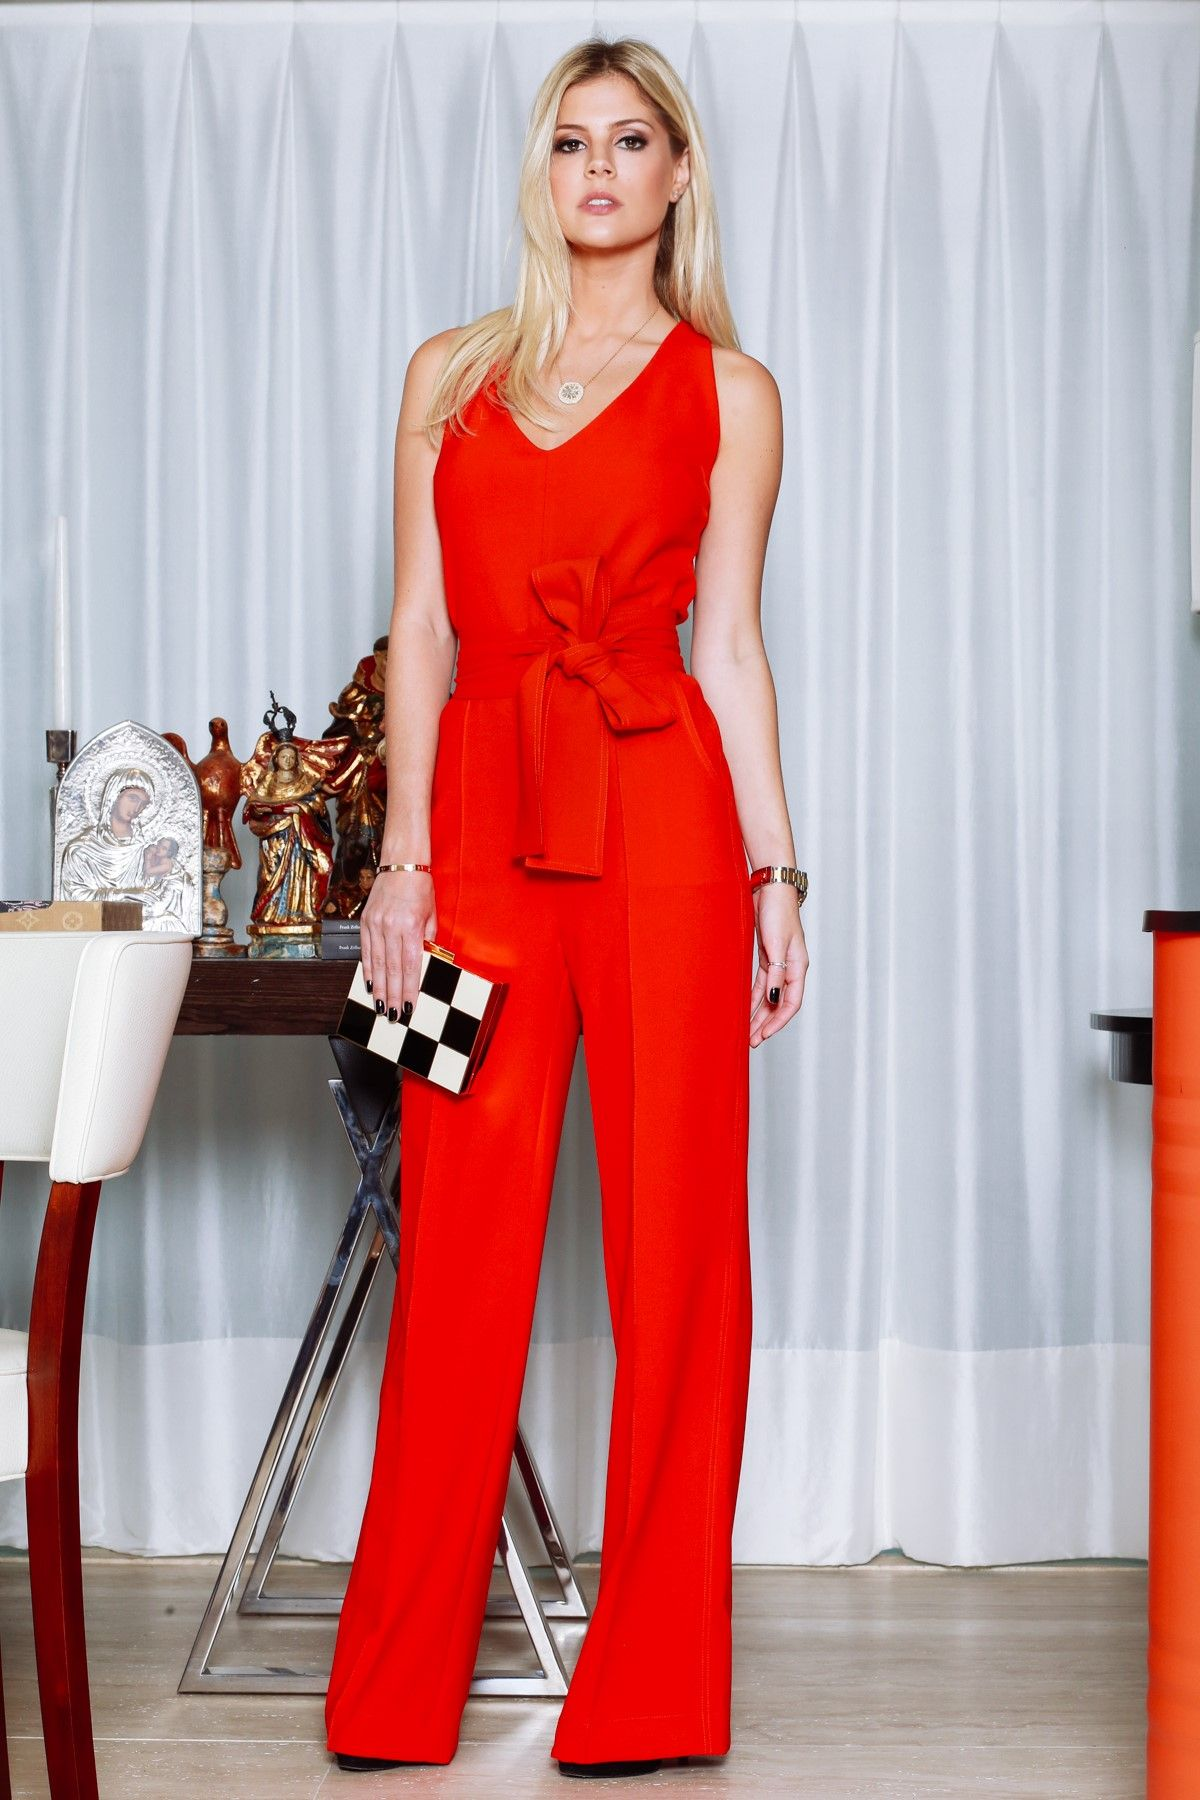 Look by Day Red - Blogger Lala Rudge